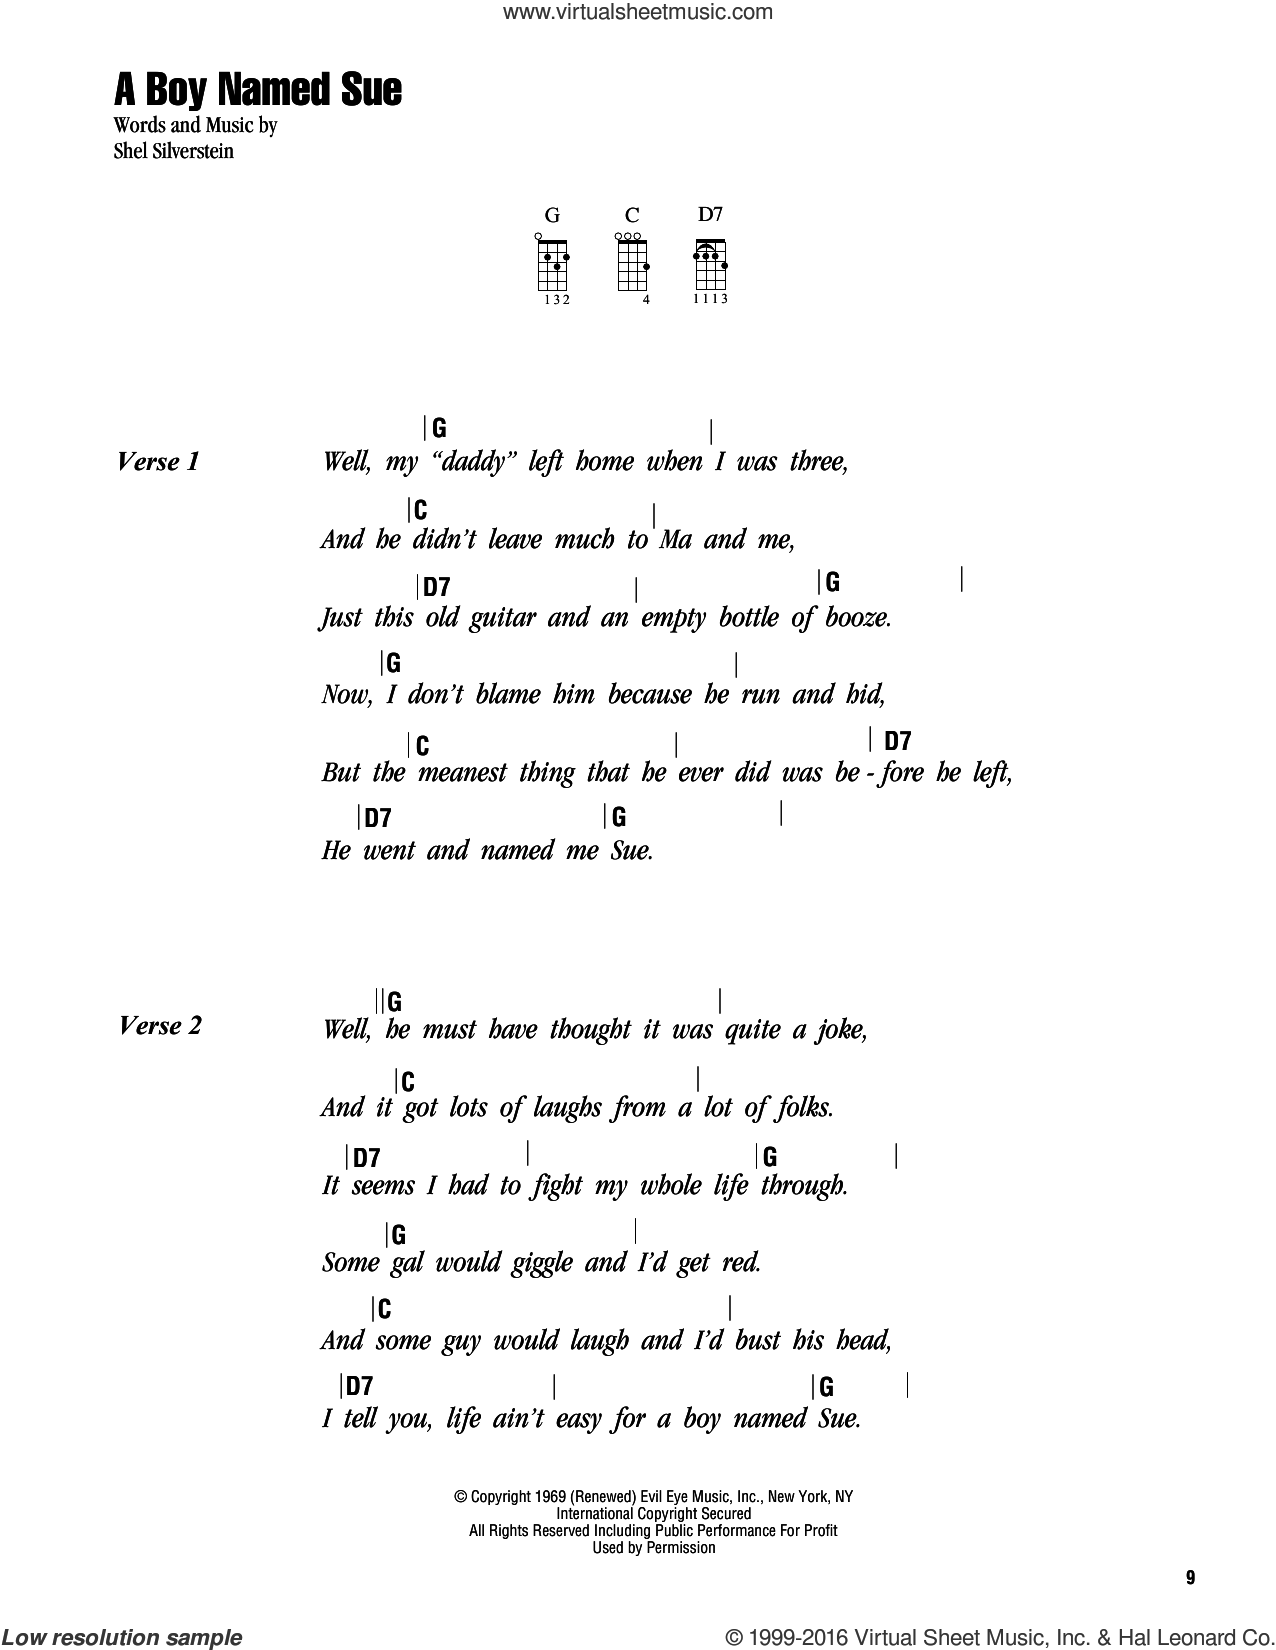 A Boy Named Sue sheet music for ukulele (chords) by Shel Silverstein